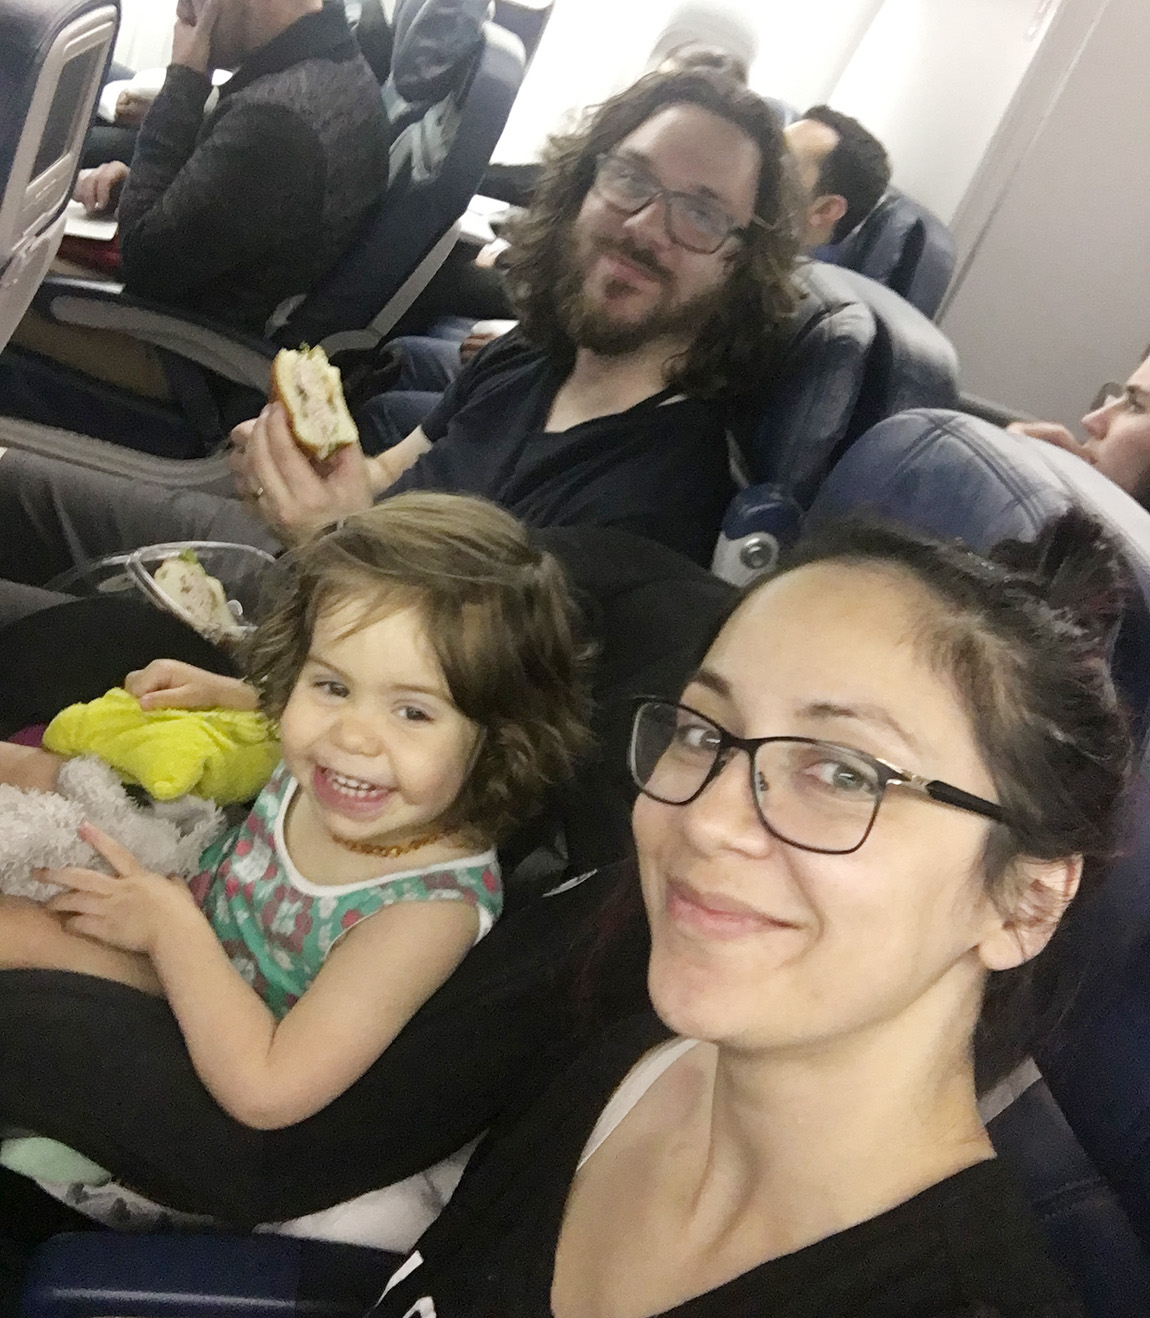 traveling with kids on an airplane